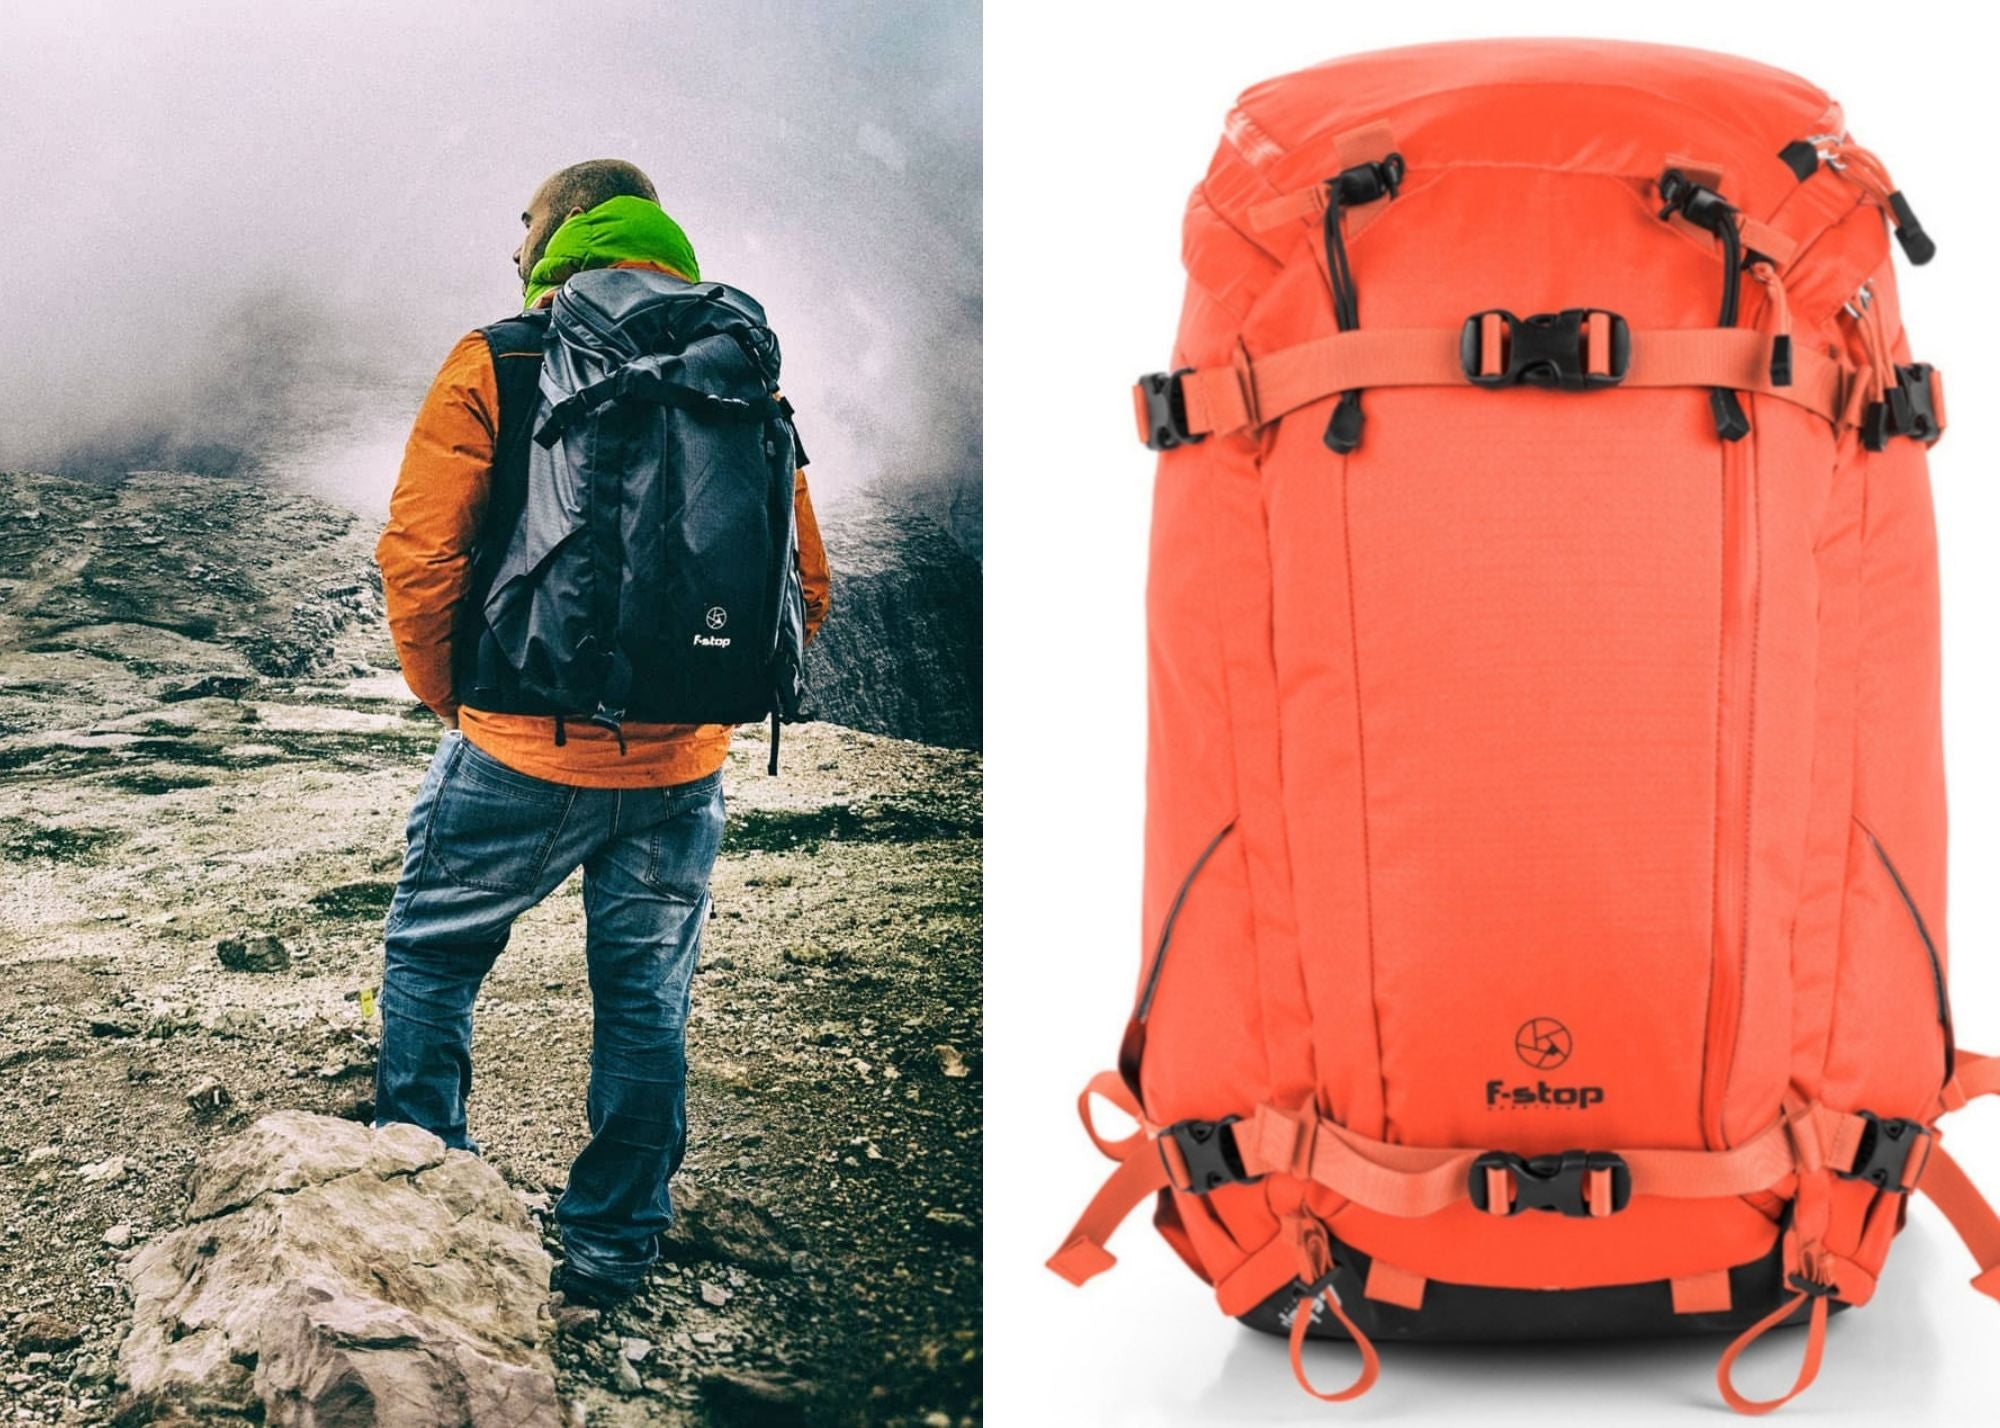 f stop anja bag for winter photography